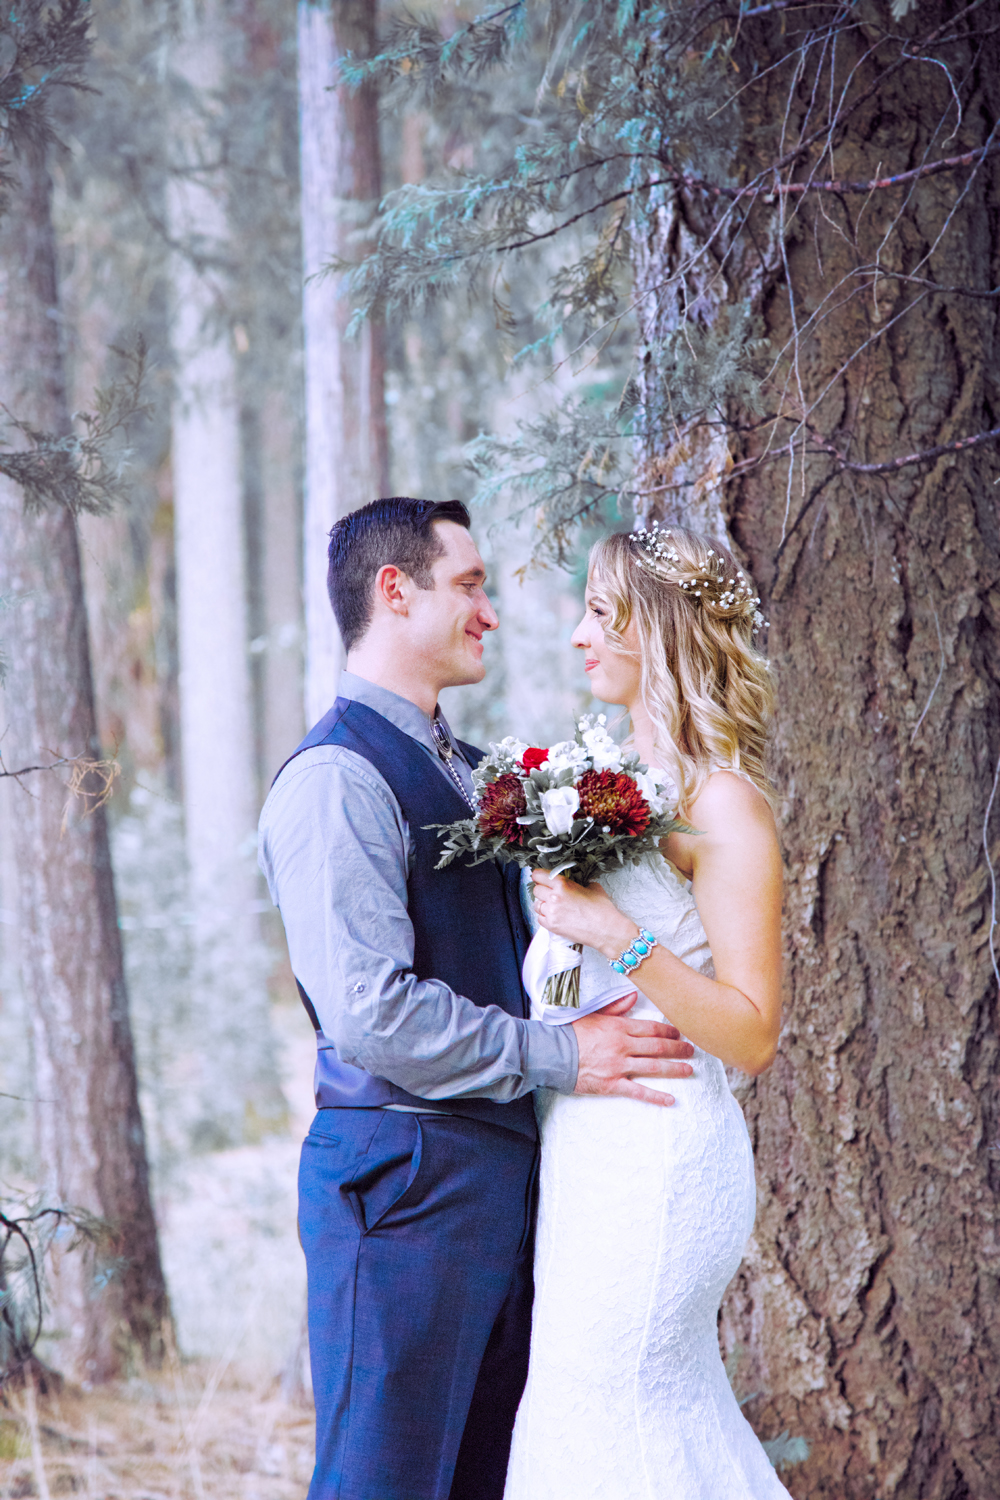 Rustic-Forest-Country-Wedding-Chico-CA29.jpg